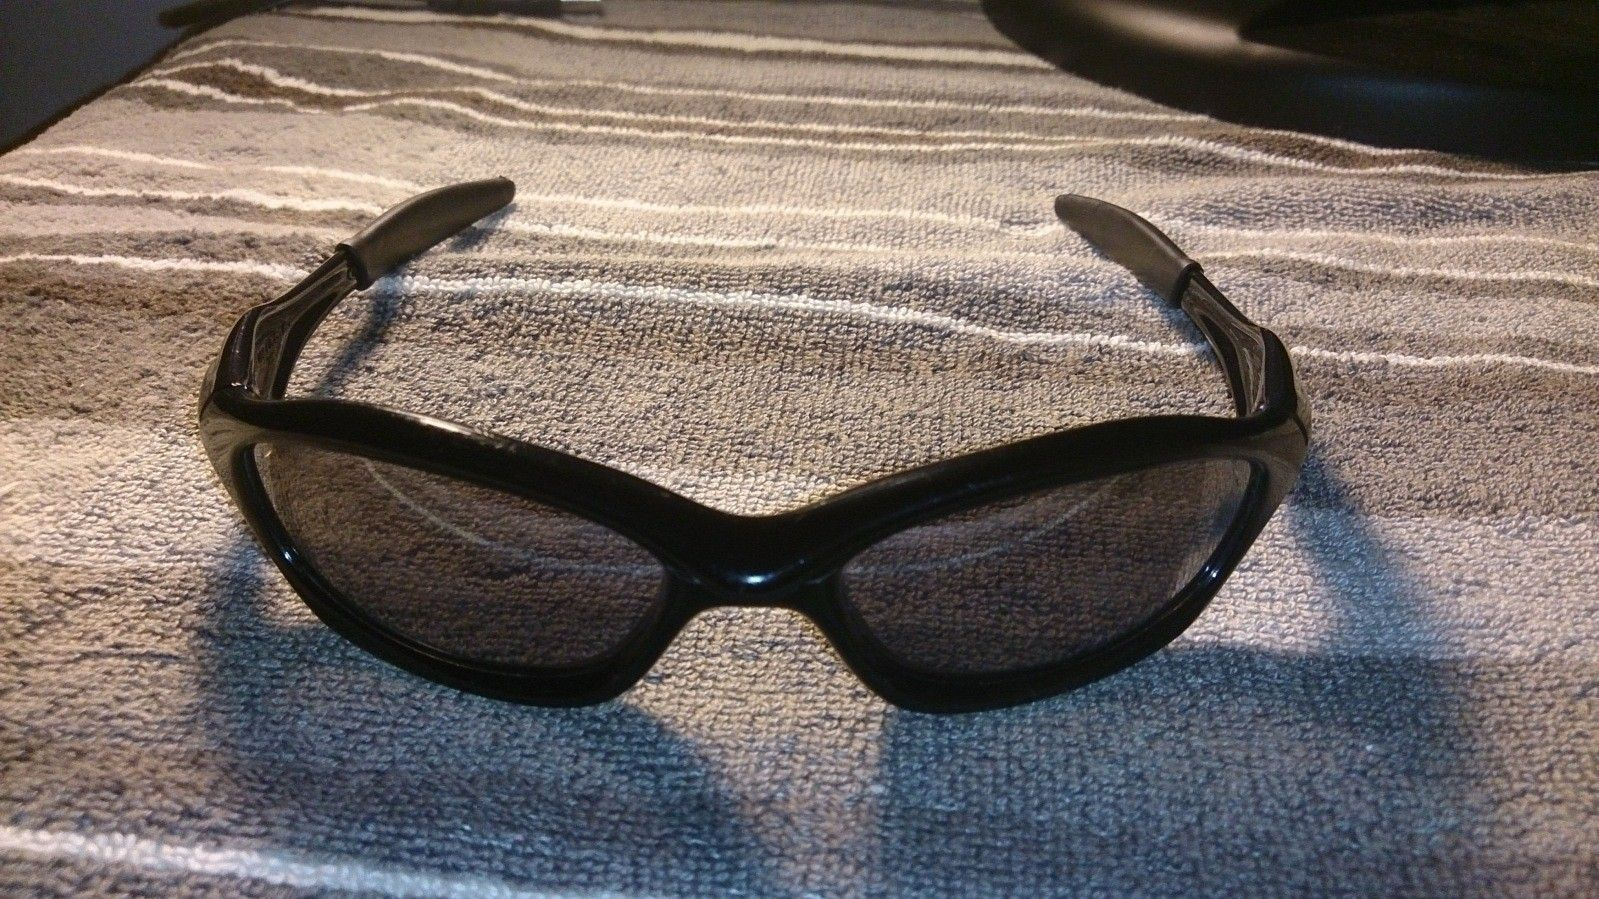 Replacing lenses, but couldn't identify the model - 21locuq.jpg